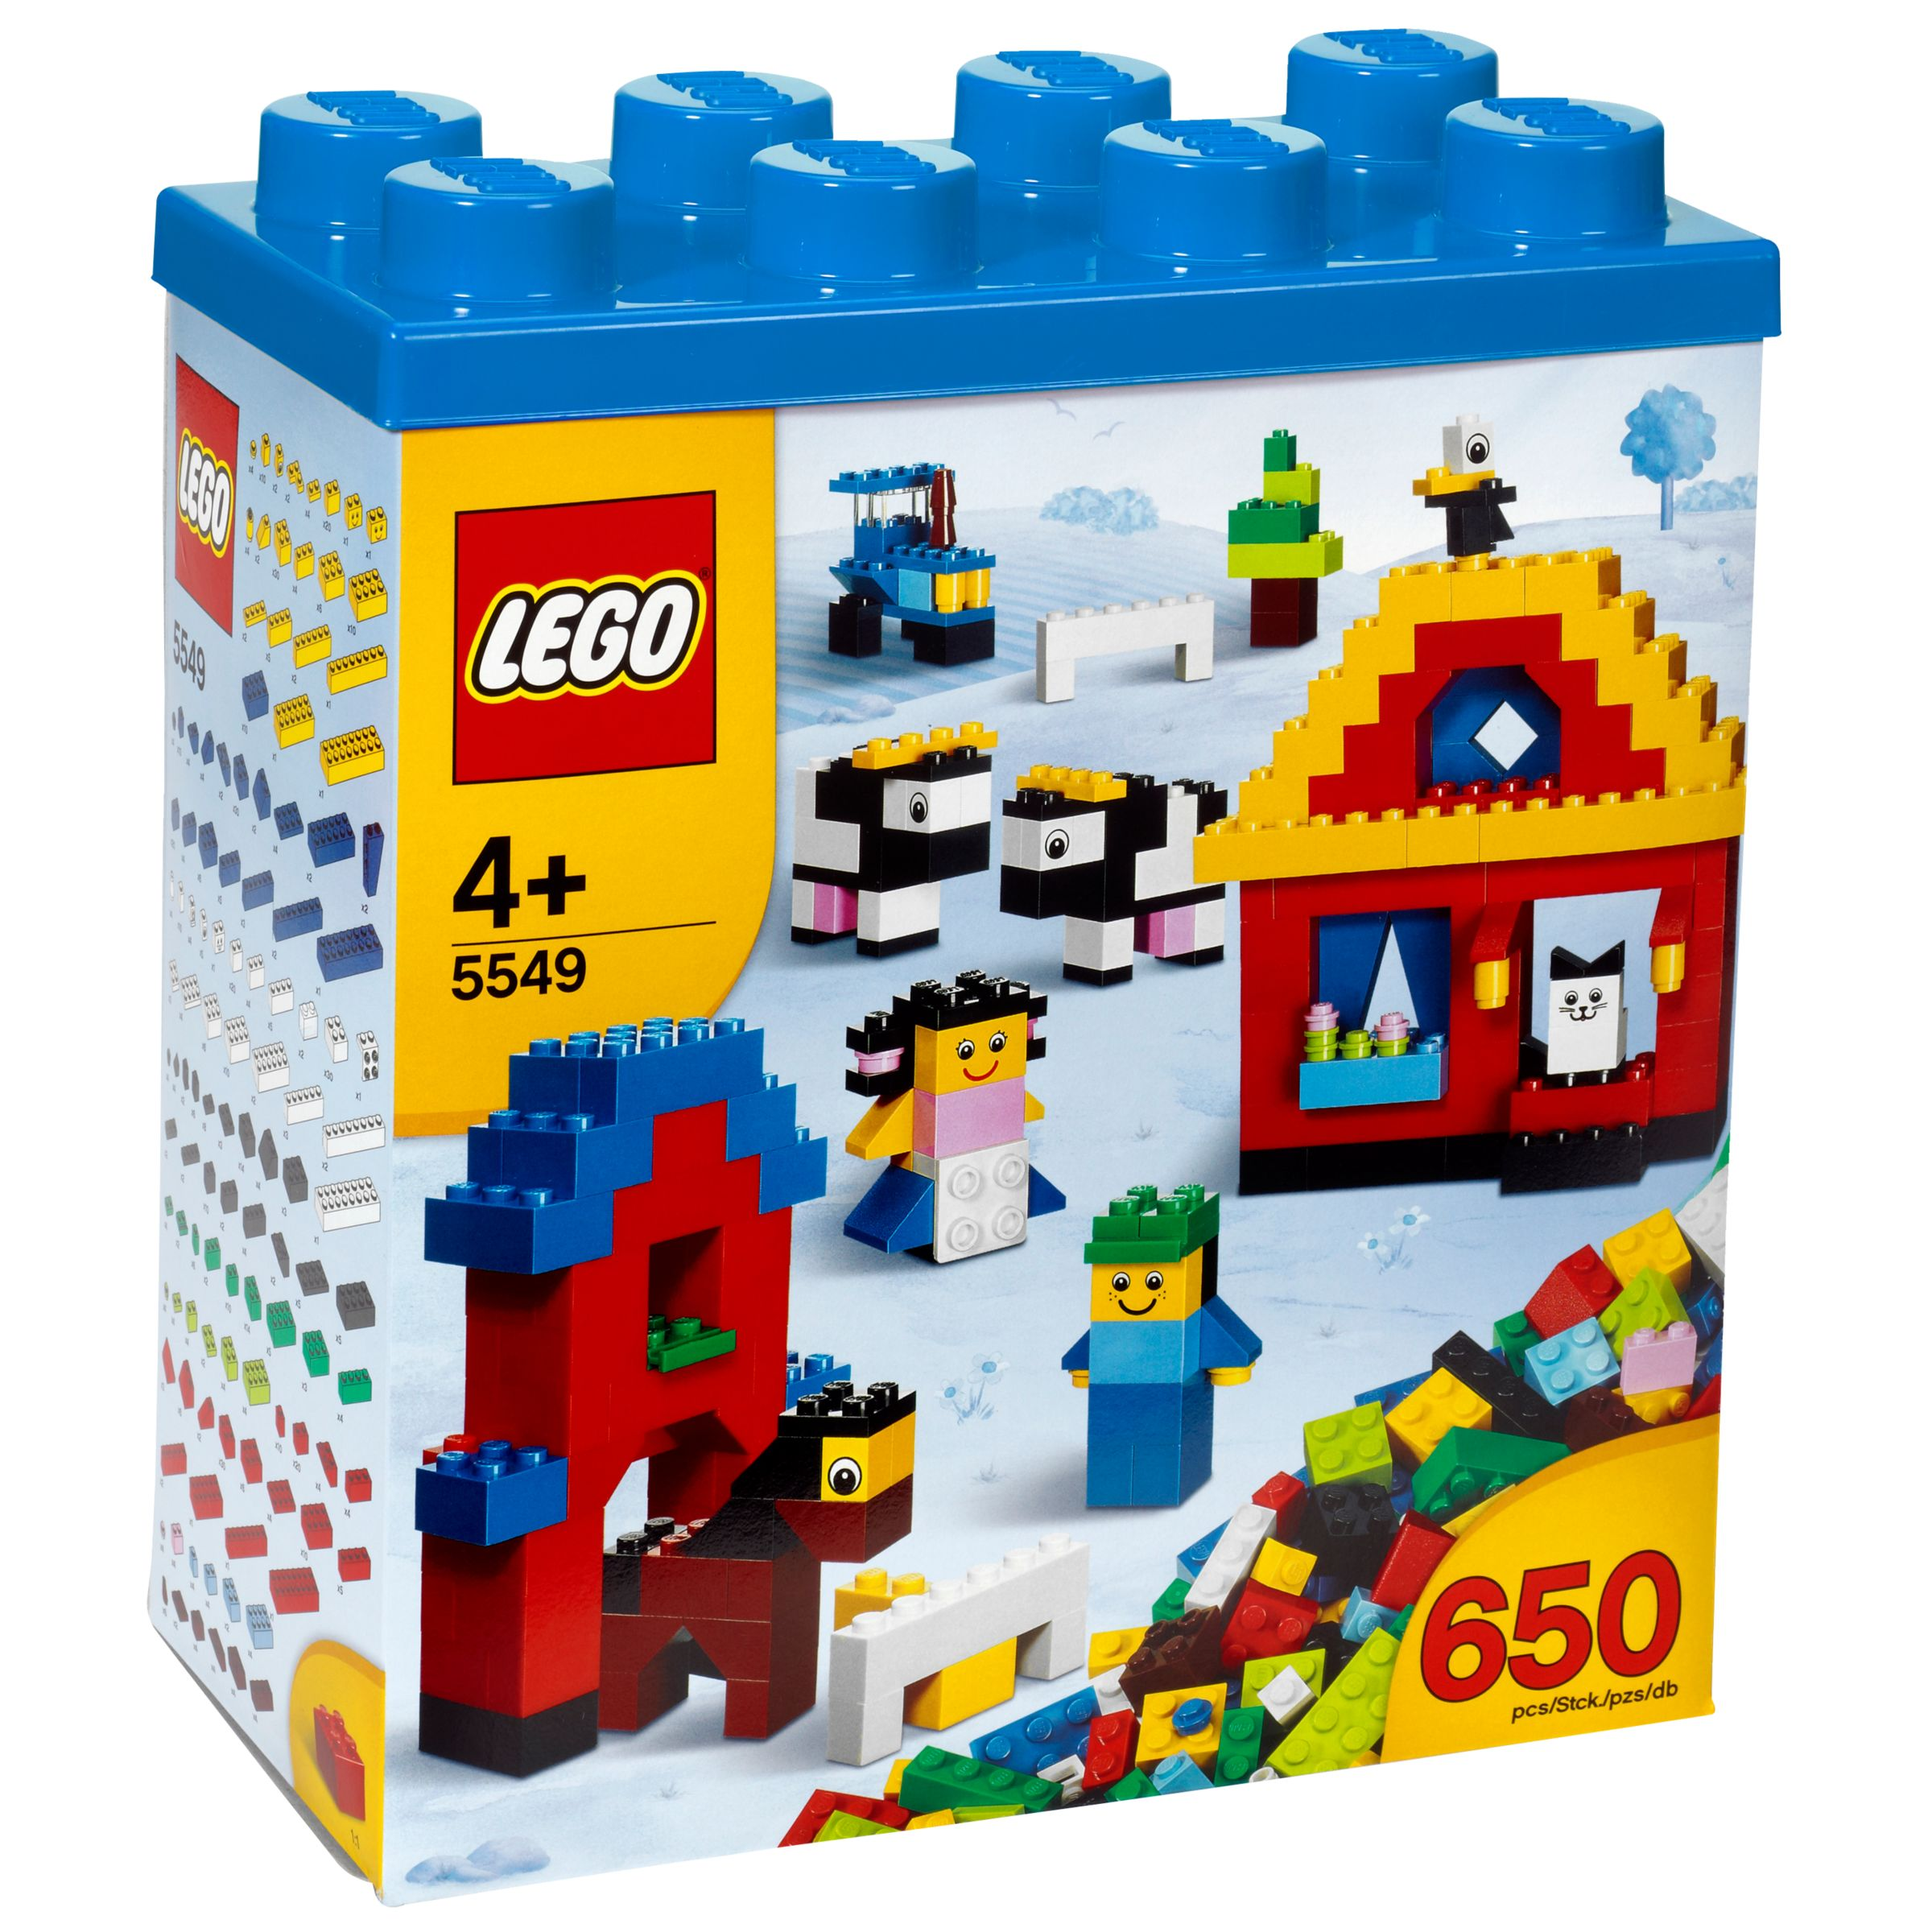 Lego Building Fun Box, Blue